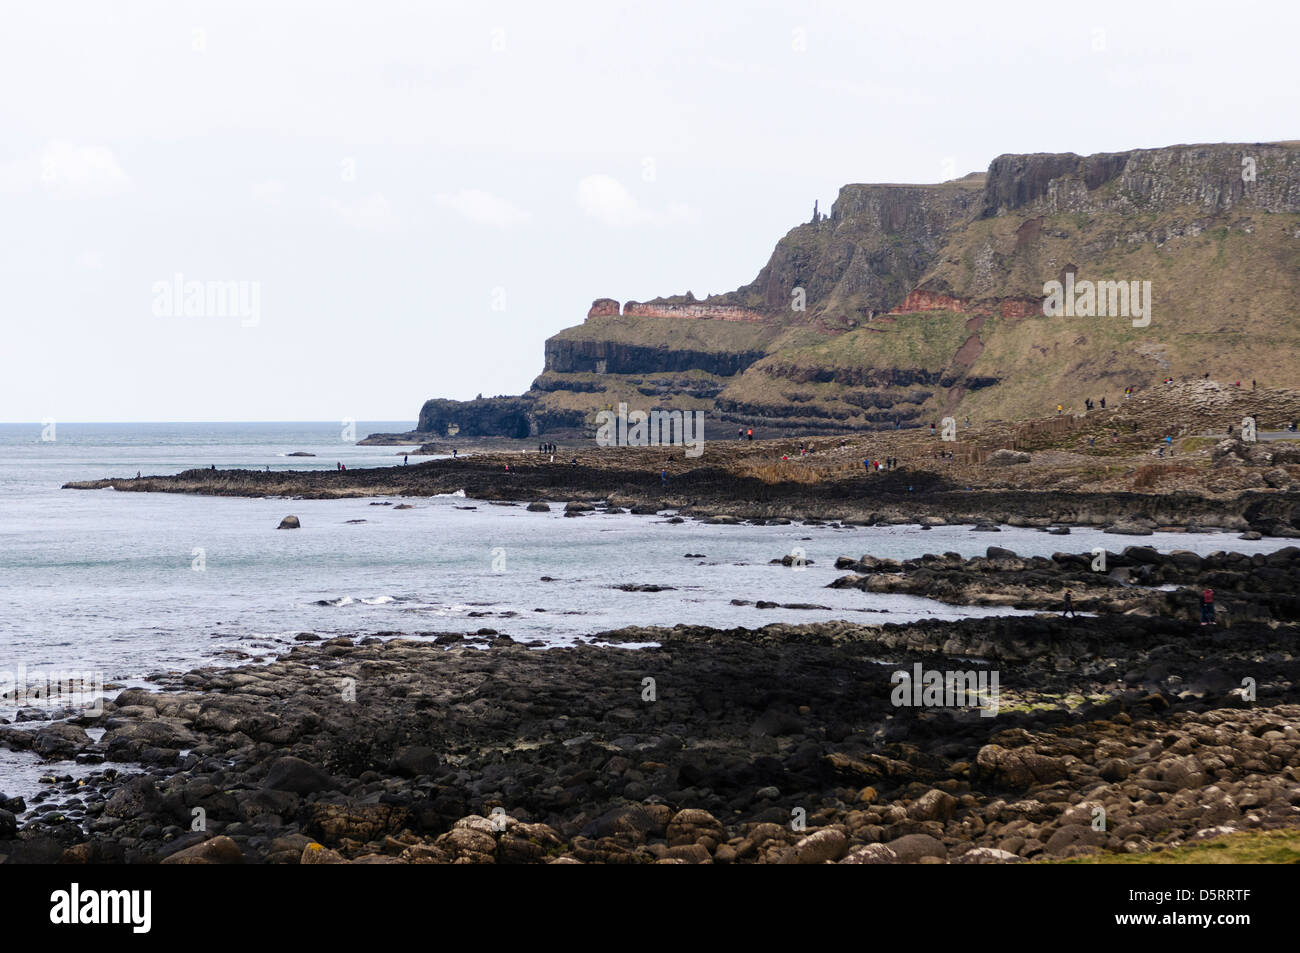 The Amphitheater at the Giant's Causeway - Stock Image